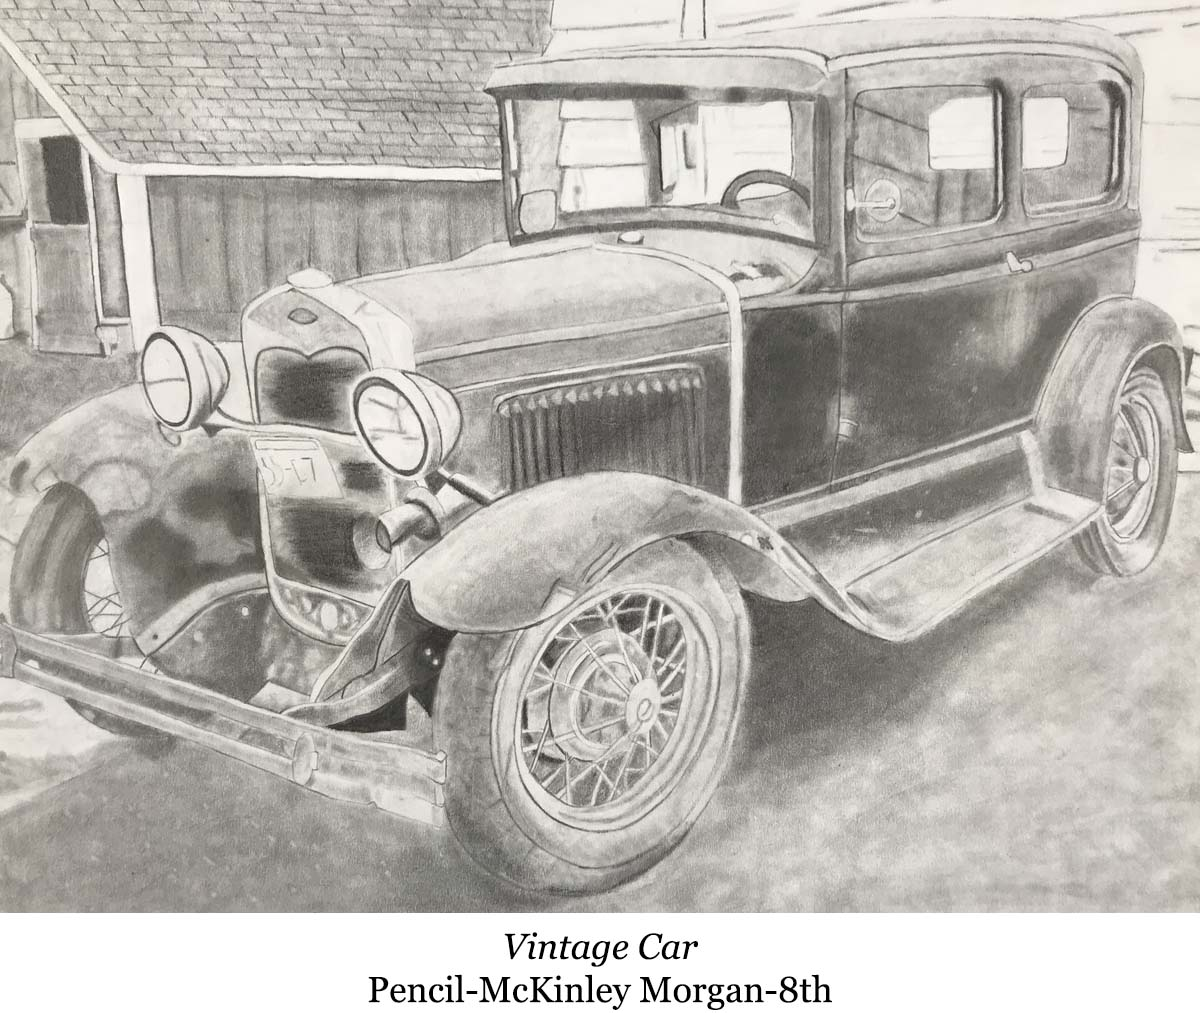 1587093423-vintage_car-pencil-mckinley_morgan-8th